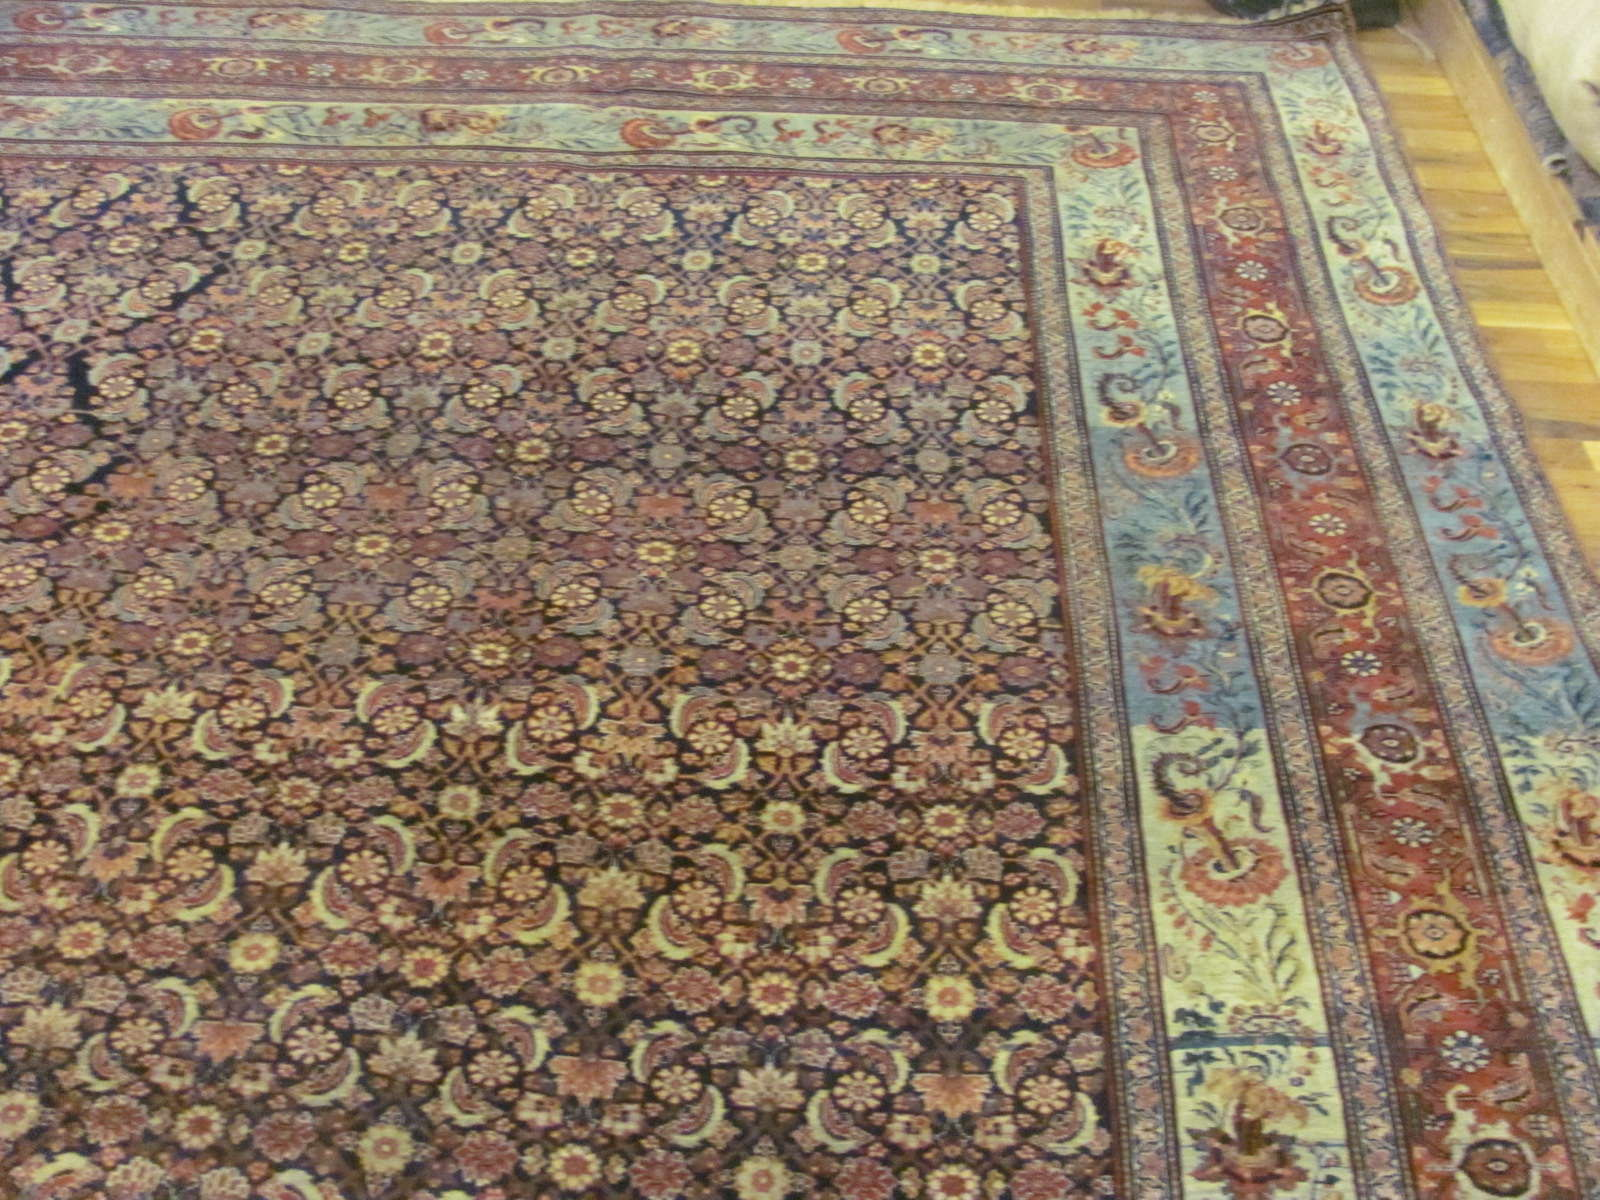 24943 Antique Persian Bidjar carpet 12,5 x 18,4 -1